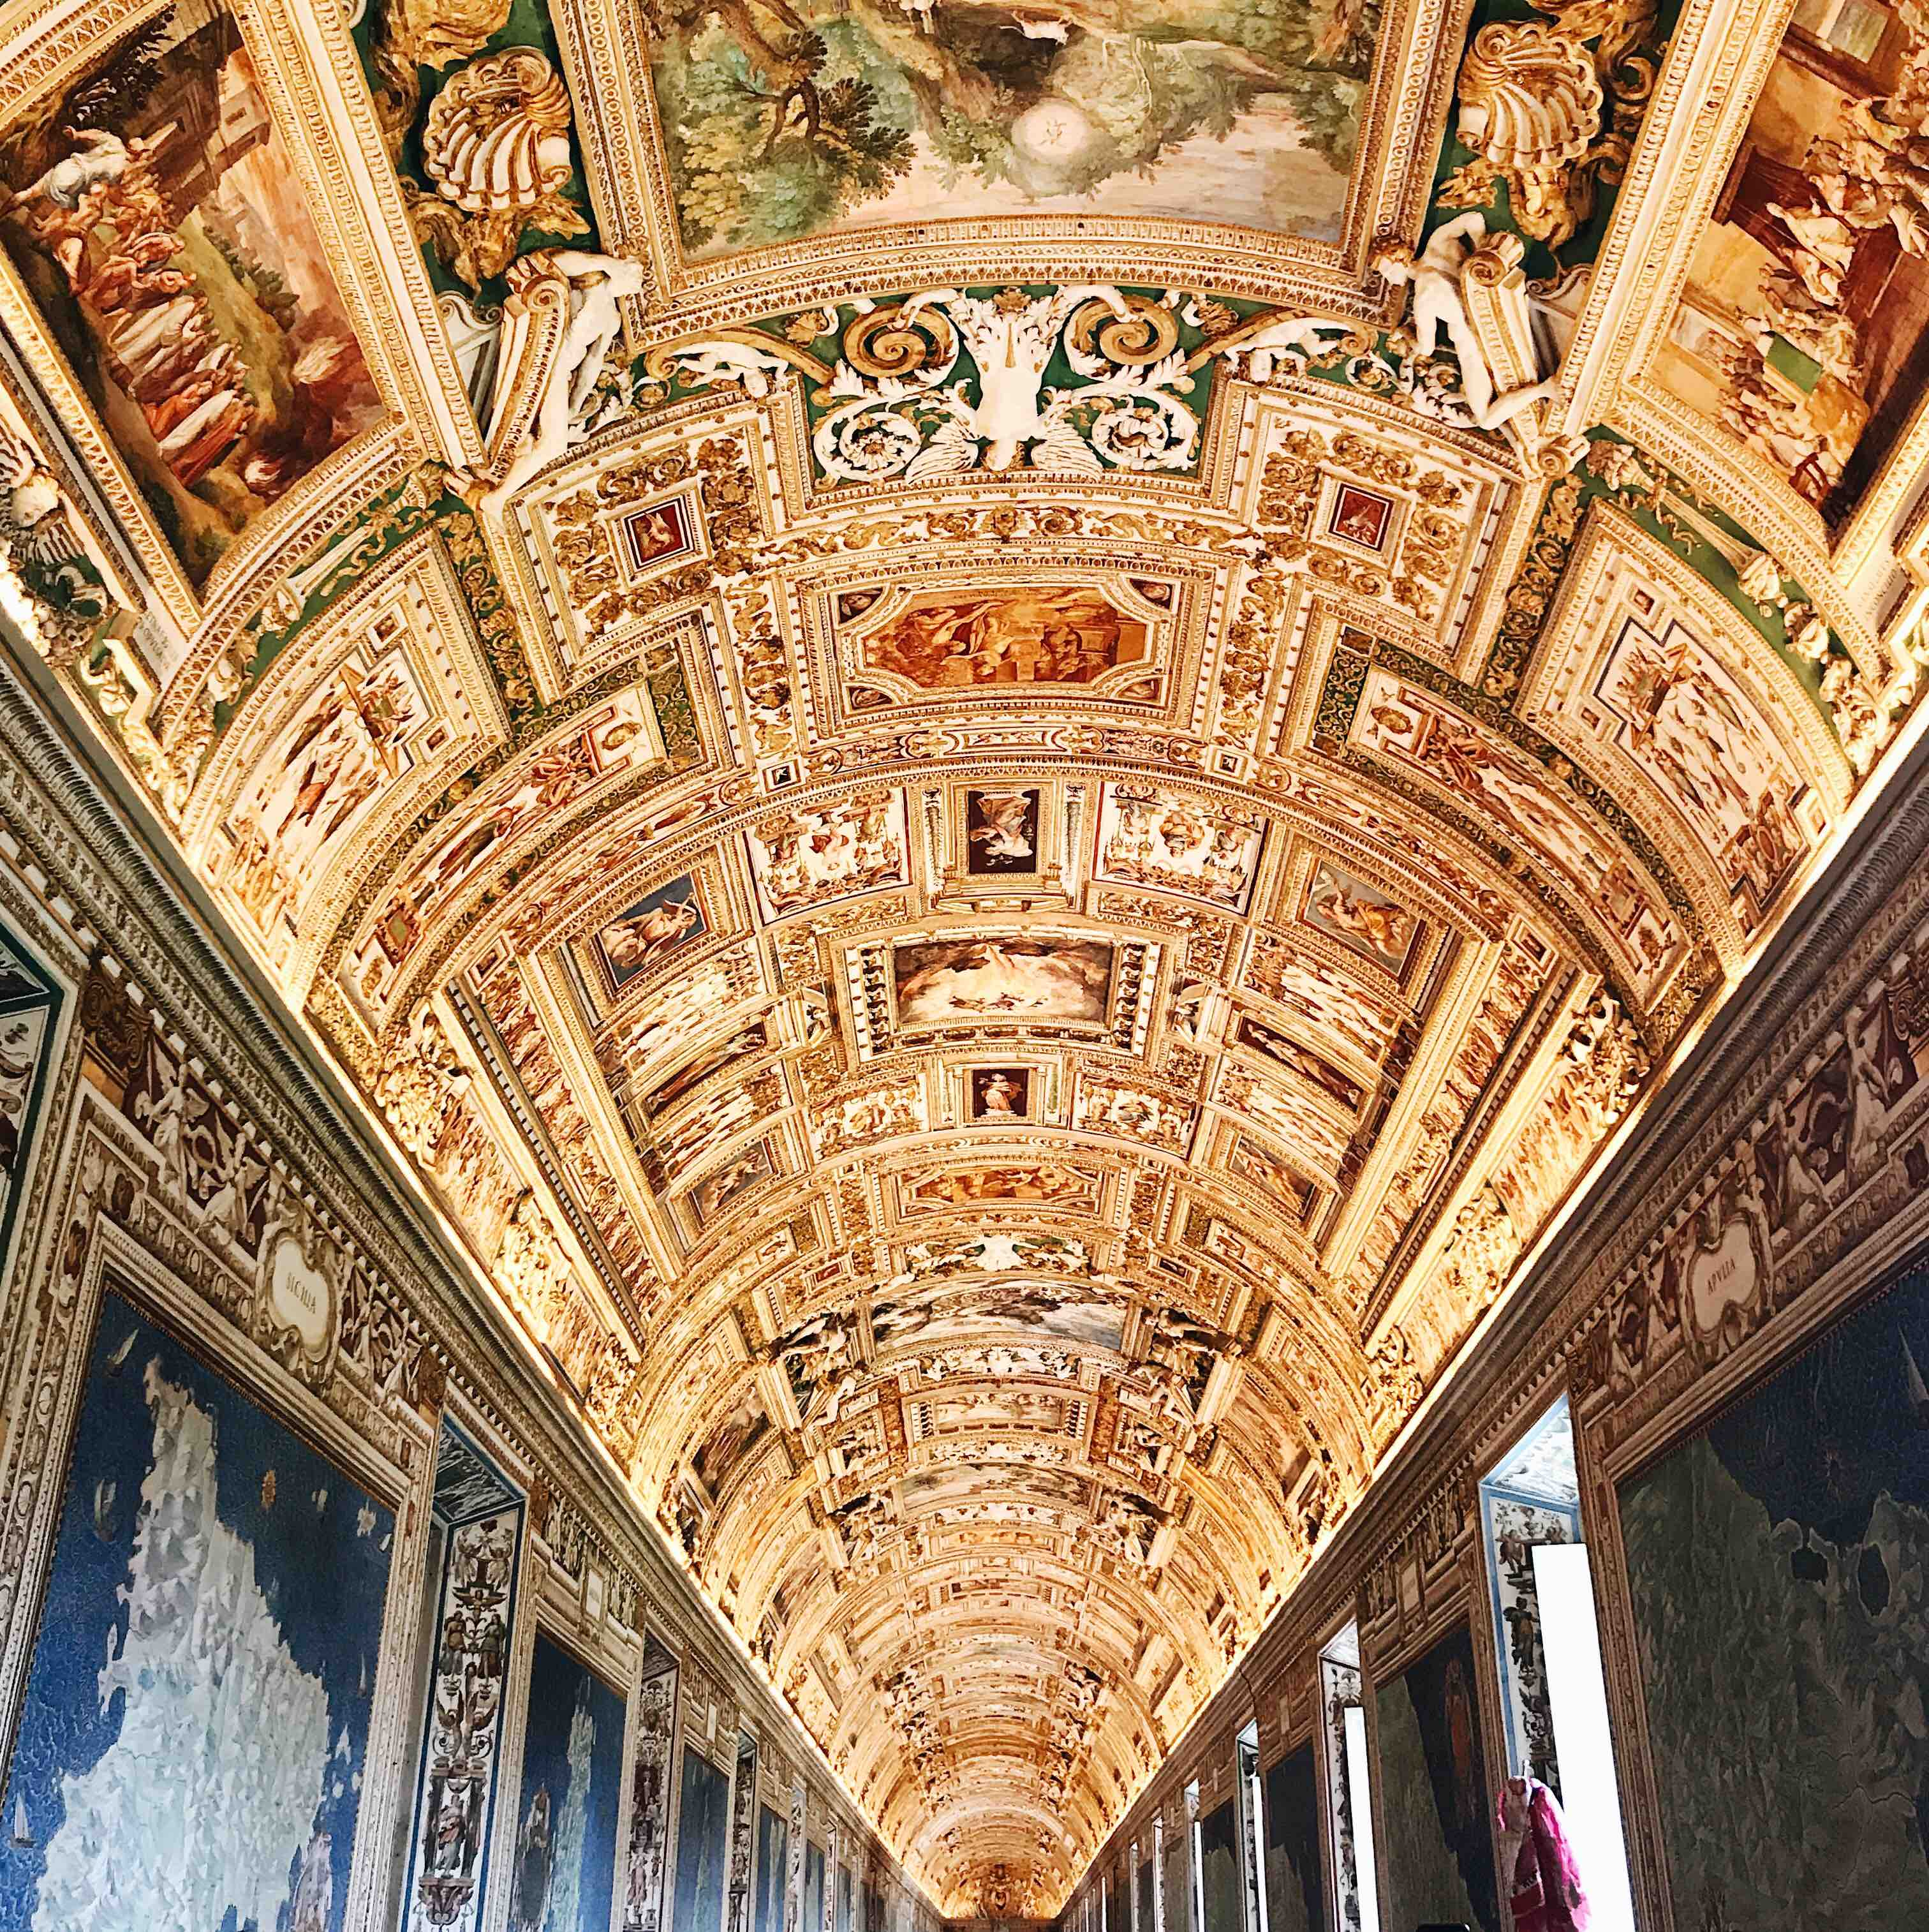 Visiting the Vatican Museum: Gallery of the Geographical Maps